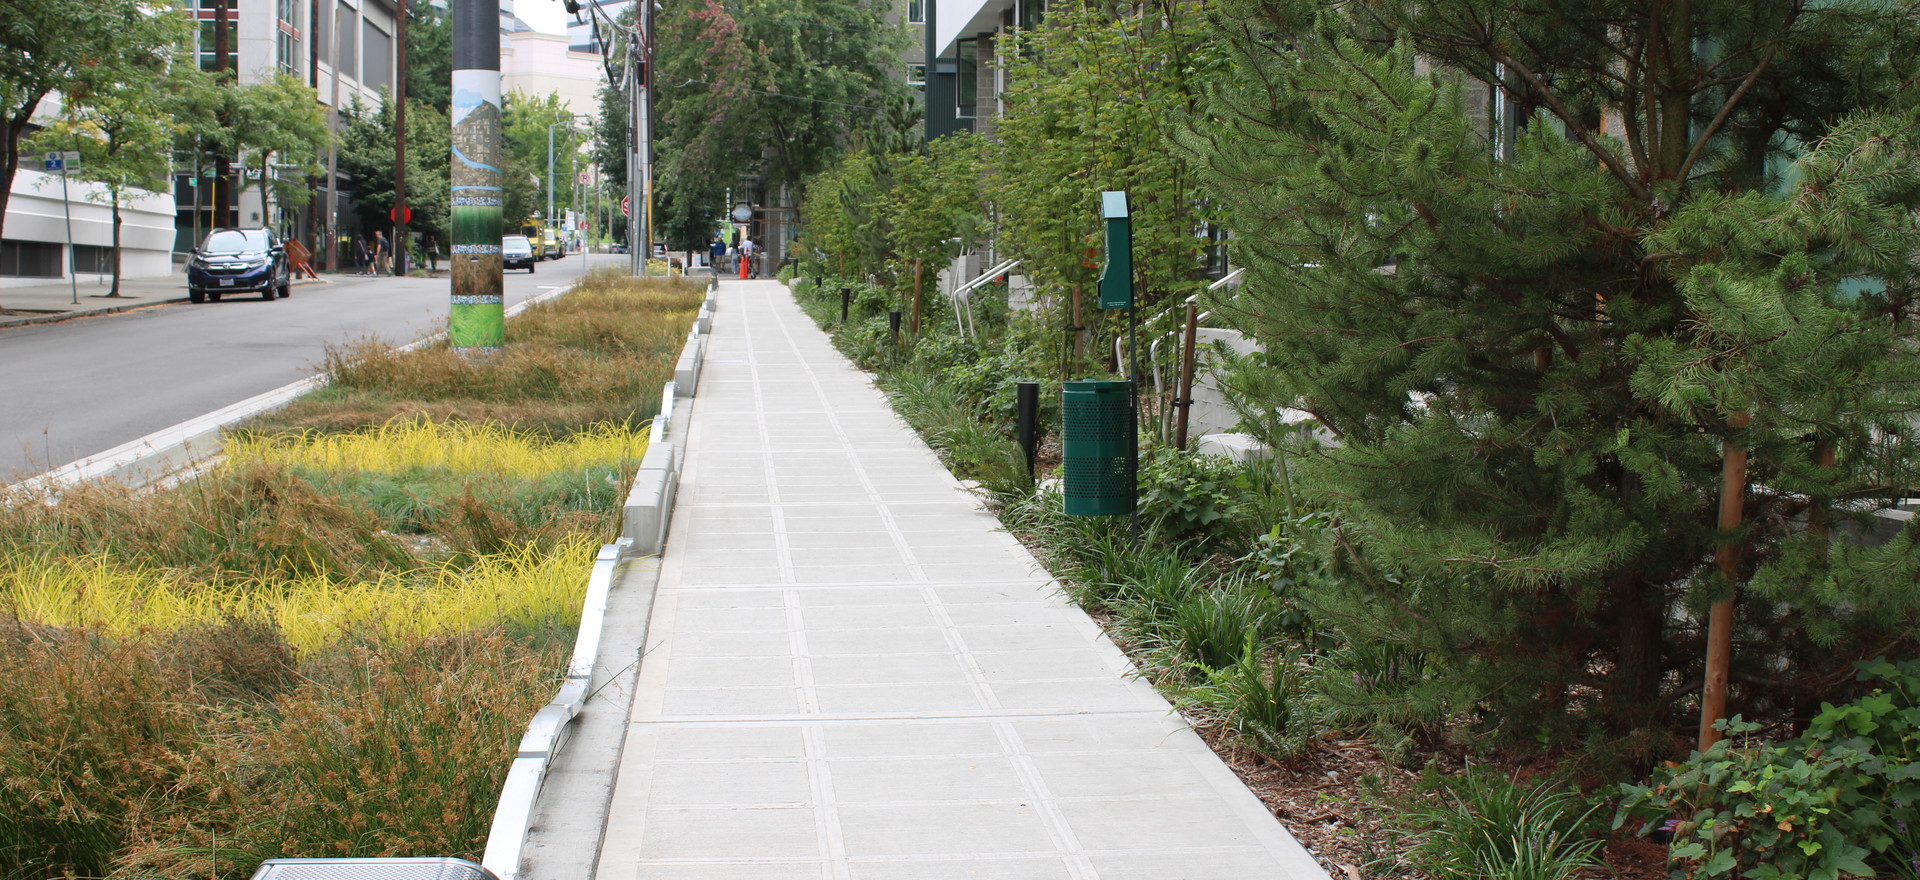 Green Stormwater Infrastructure